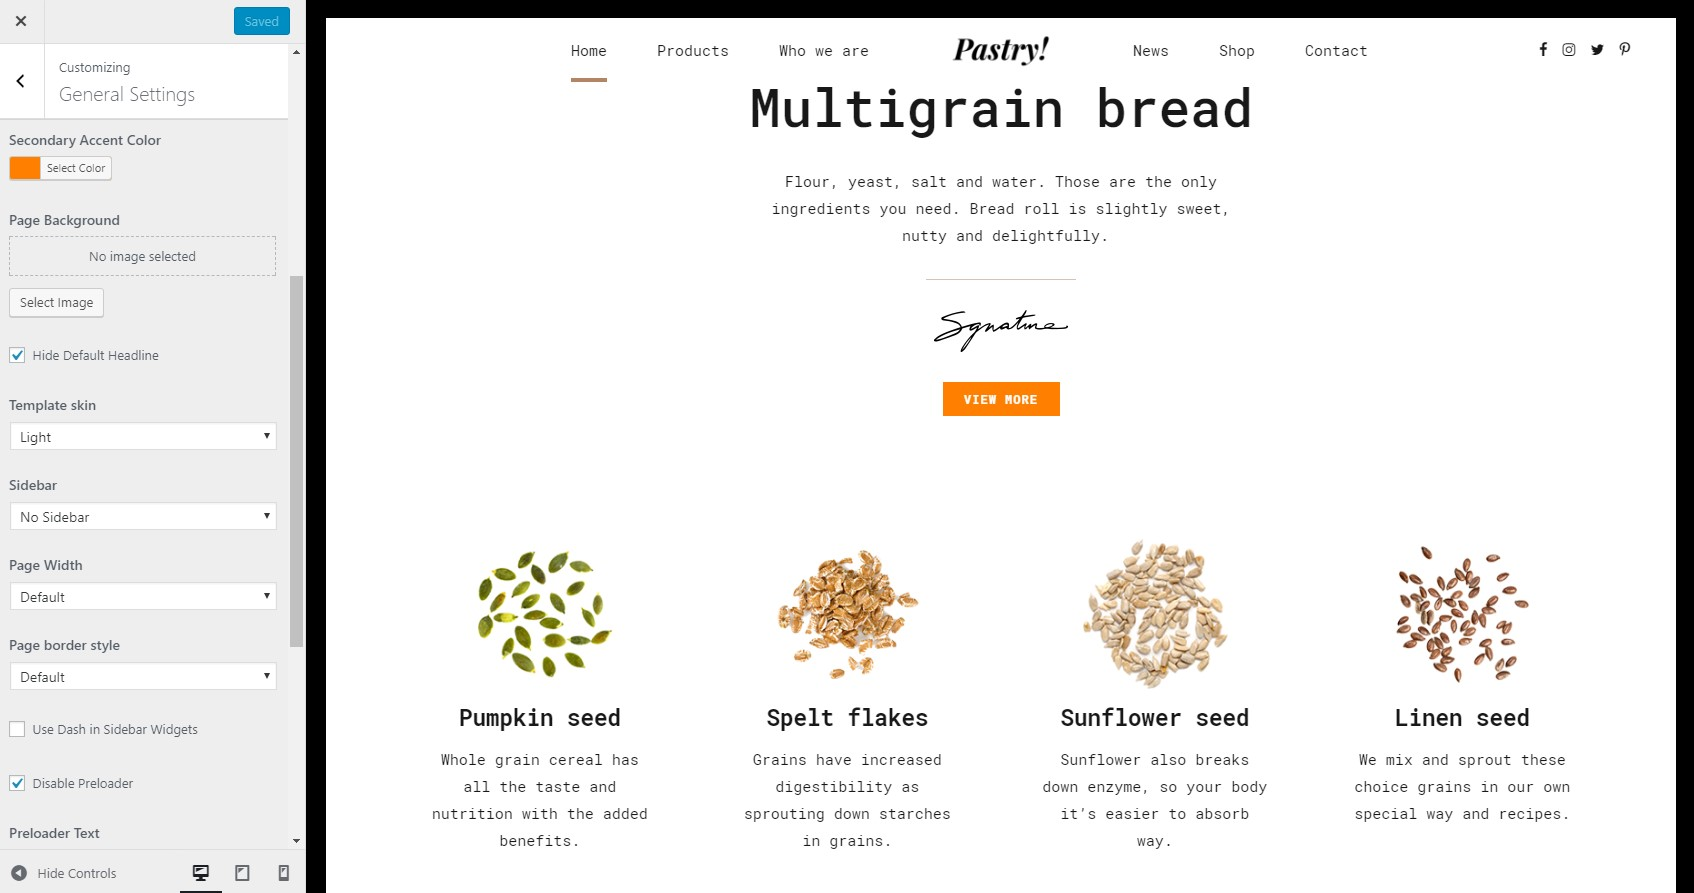 http://documentation.bold-themes.com/pastry-love/wp-content/uploads/sites/22/2016/07/alternate-color.jpg